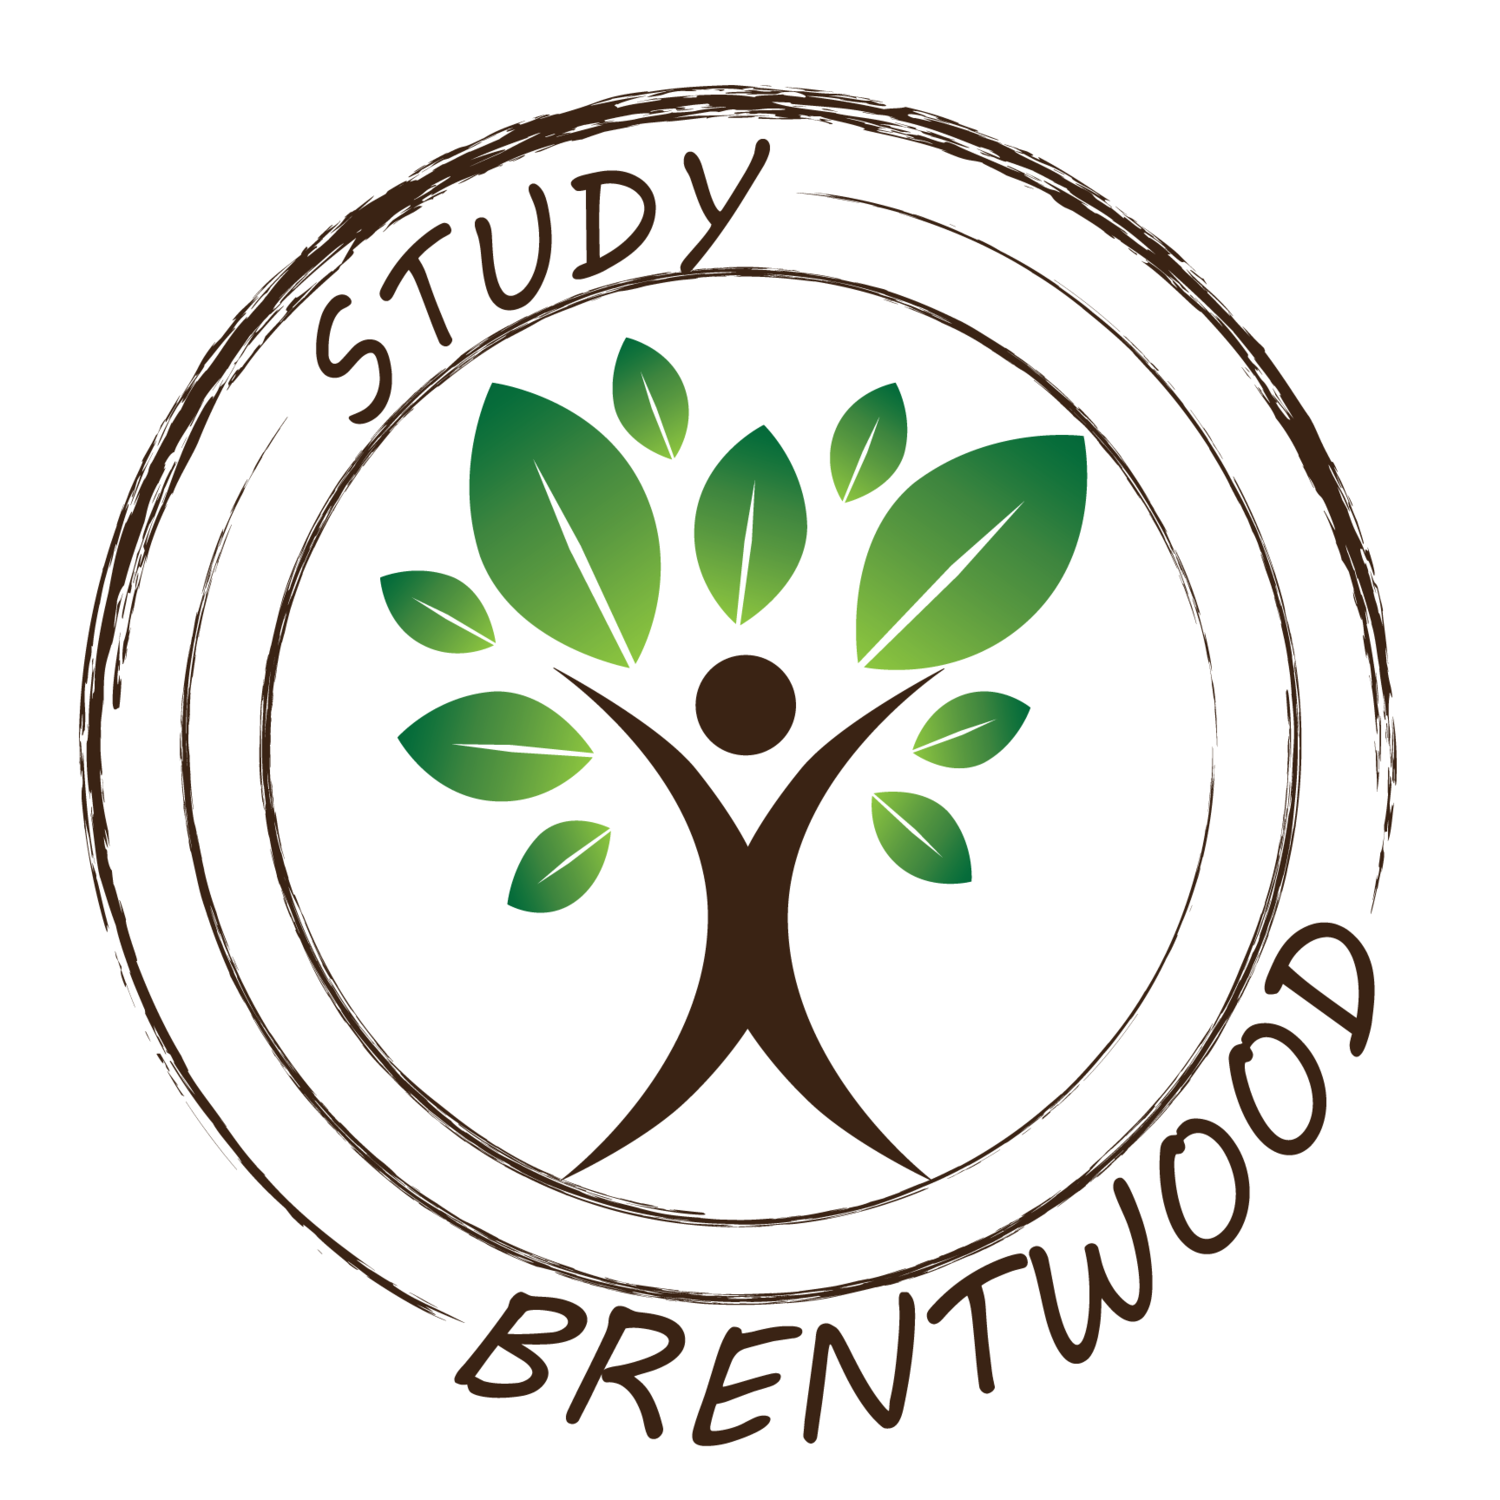 STUDY BRENTWOOD